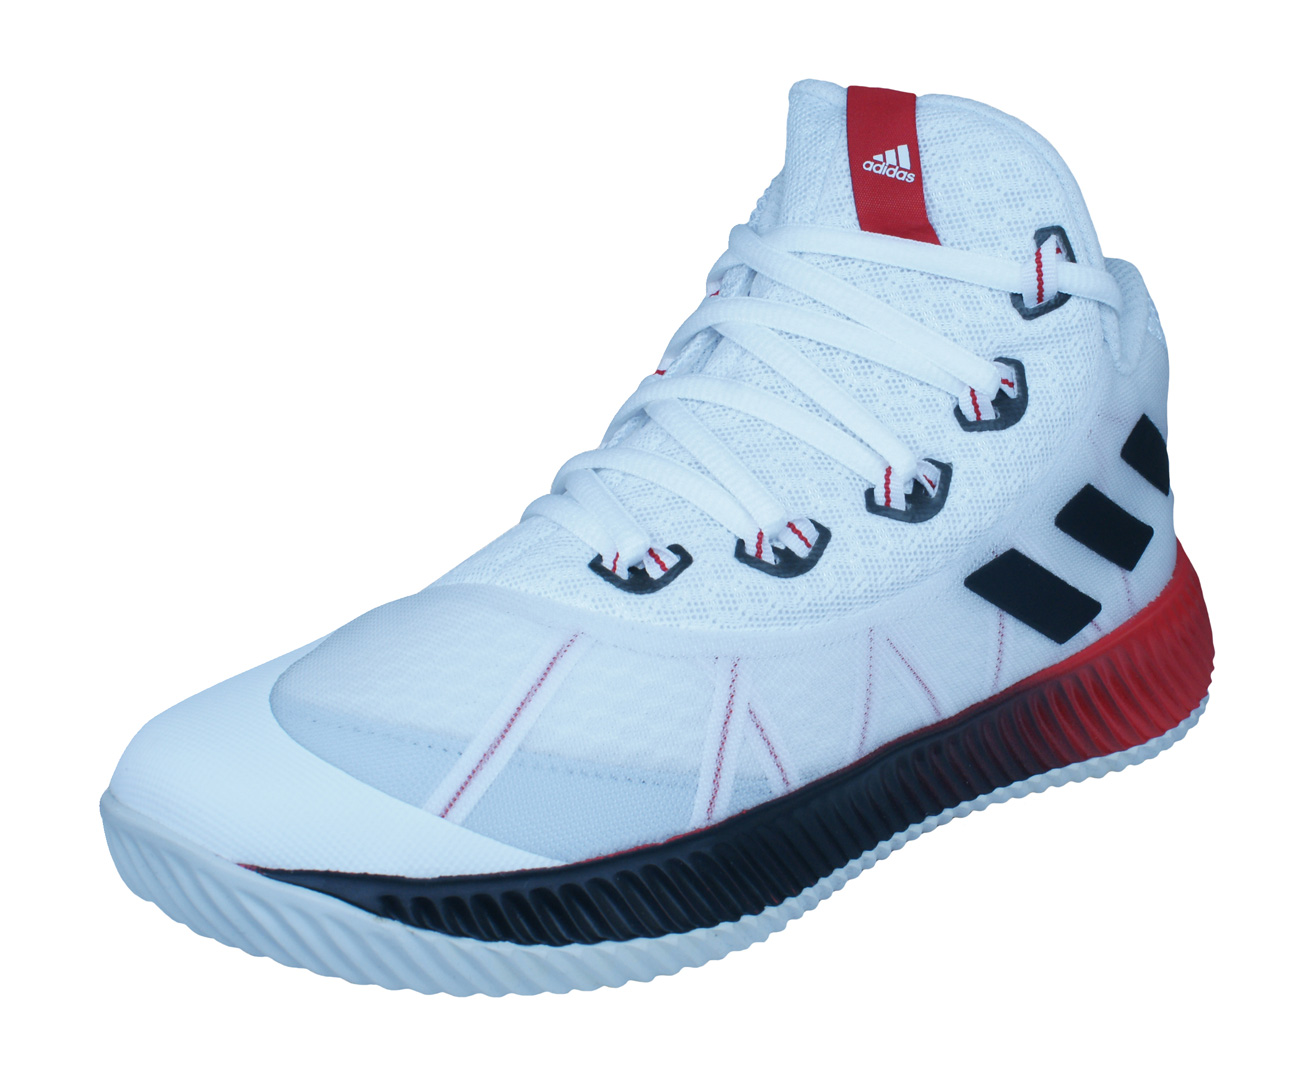 7254d1fb8a9 adidas Energy Bounce BB Boys Basketball Trainers   Shoes - White at ...